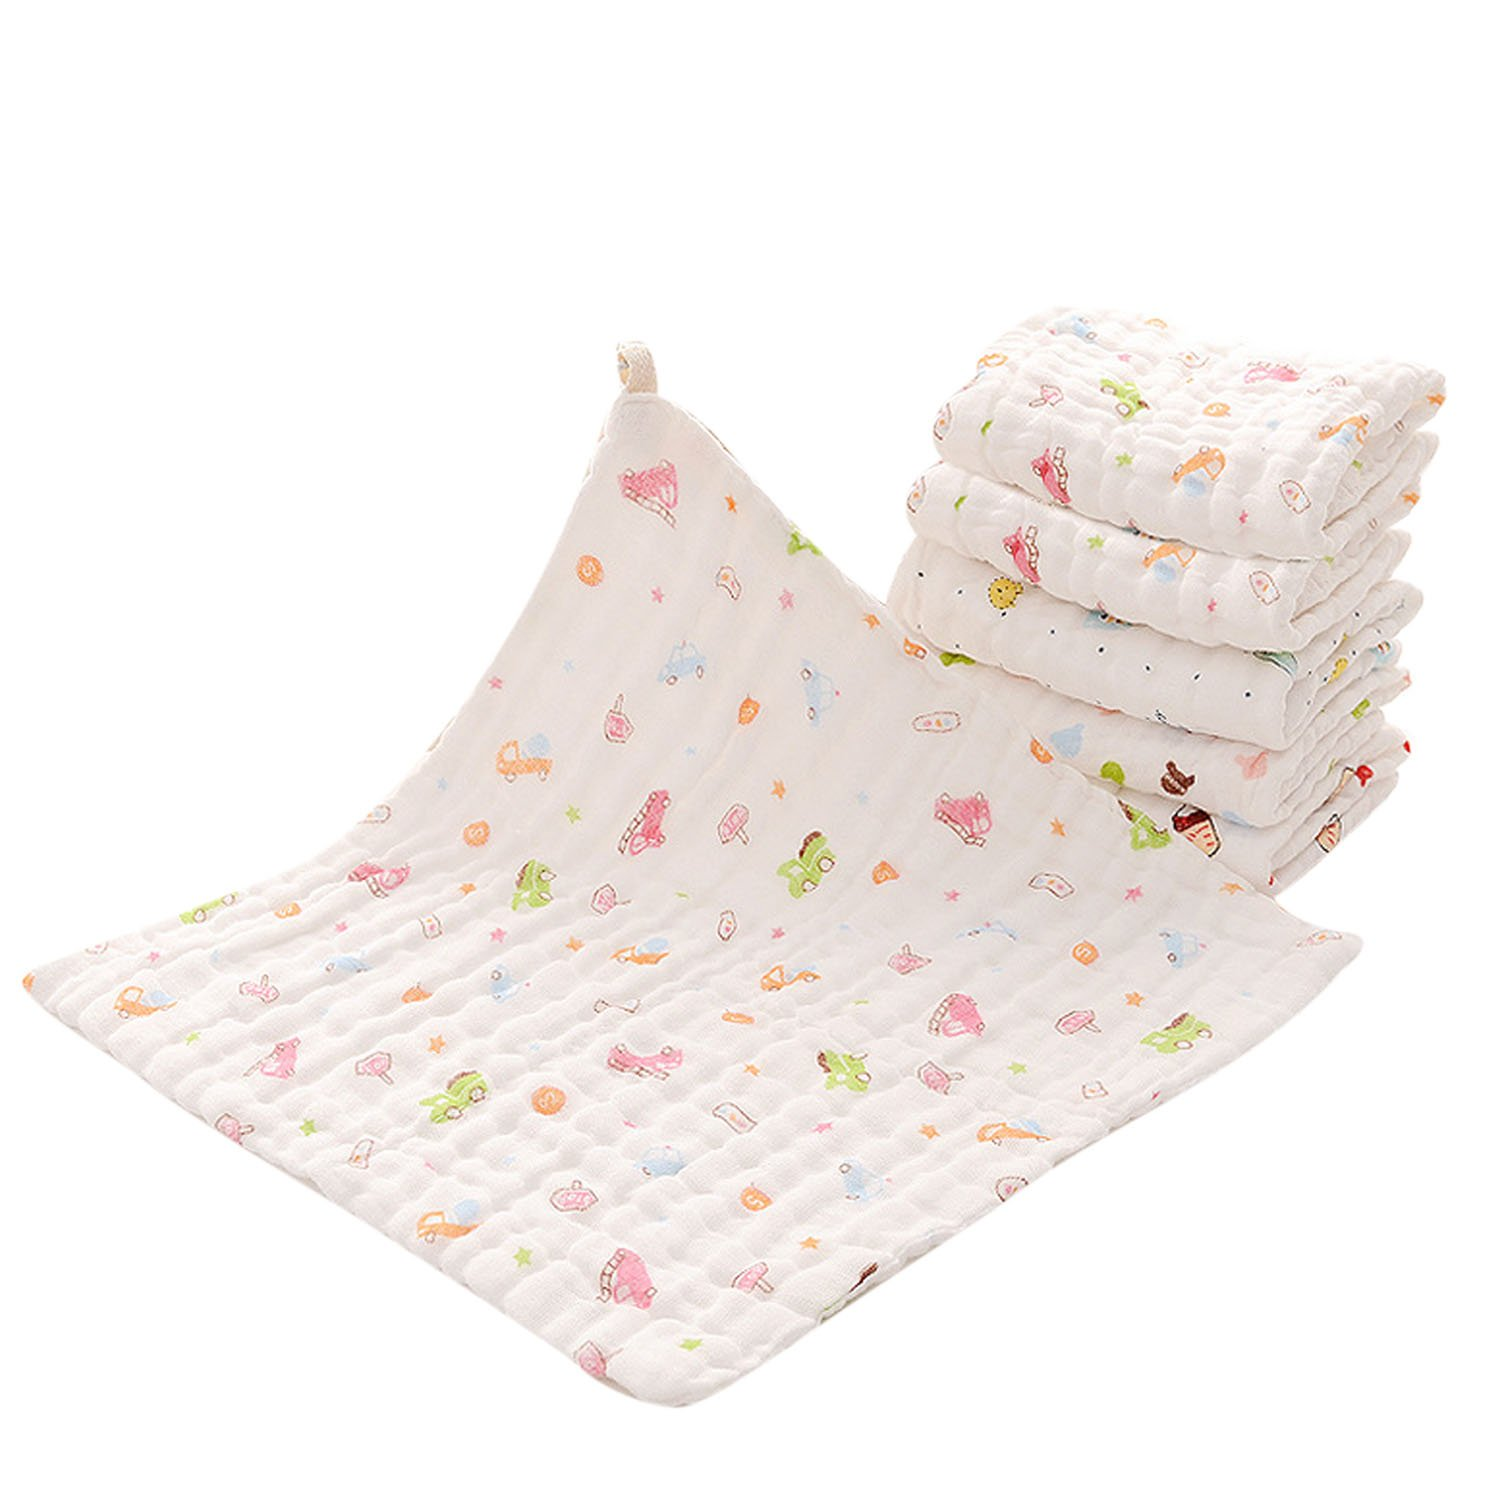 6 PCS Super Soft Cotton Kid Newborn Baby Towel Muslin Face Sweat Saliva Wipe Washcloth 30 x 30cm Random Color Gosear